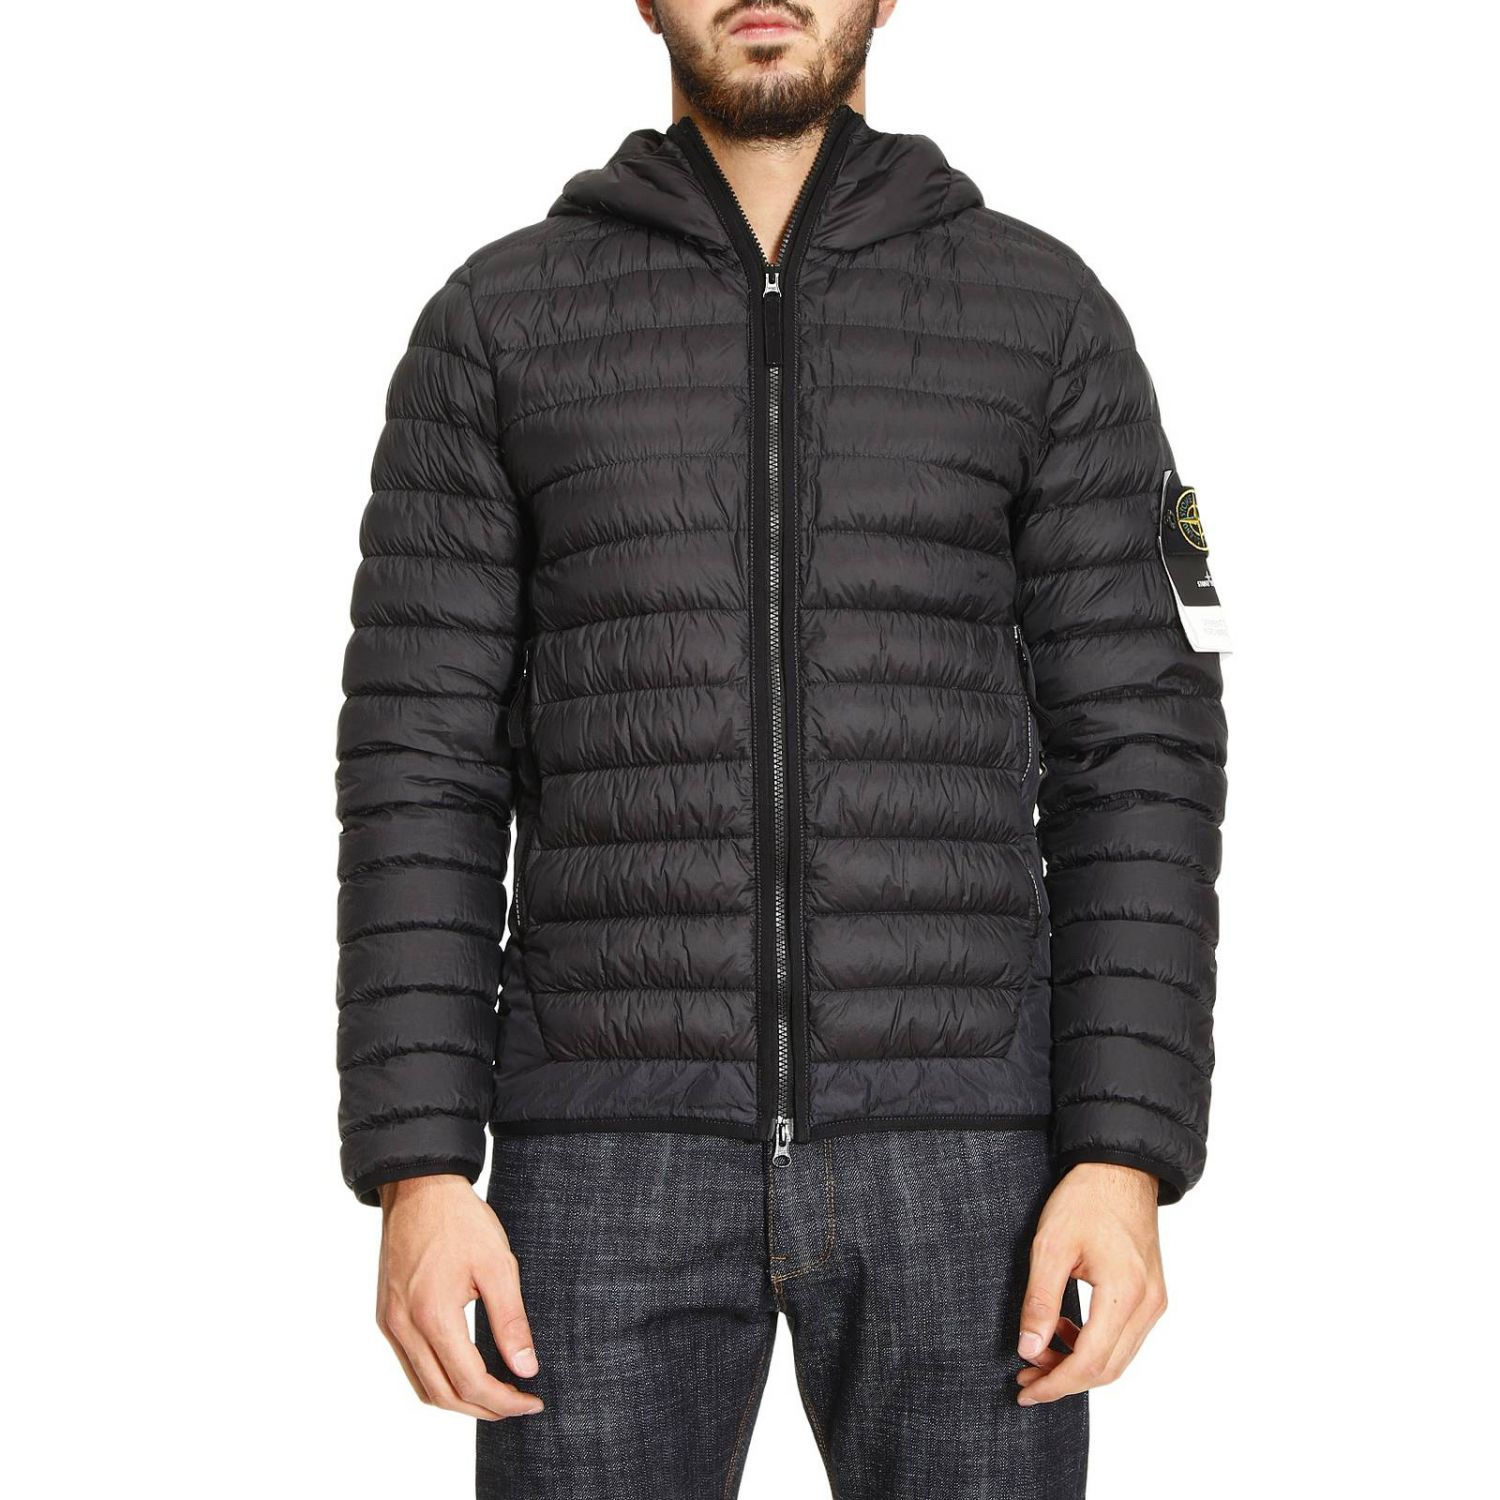 for whole family best quality on sale Jacket Stone Island Men | Jacket Men Stone Island 40124 Giglio EN